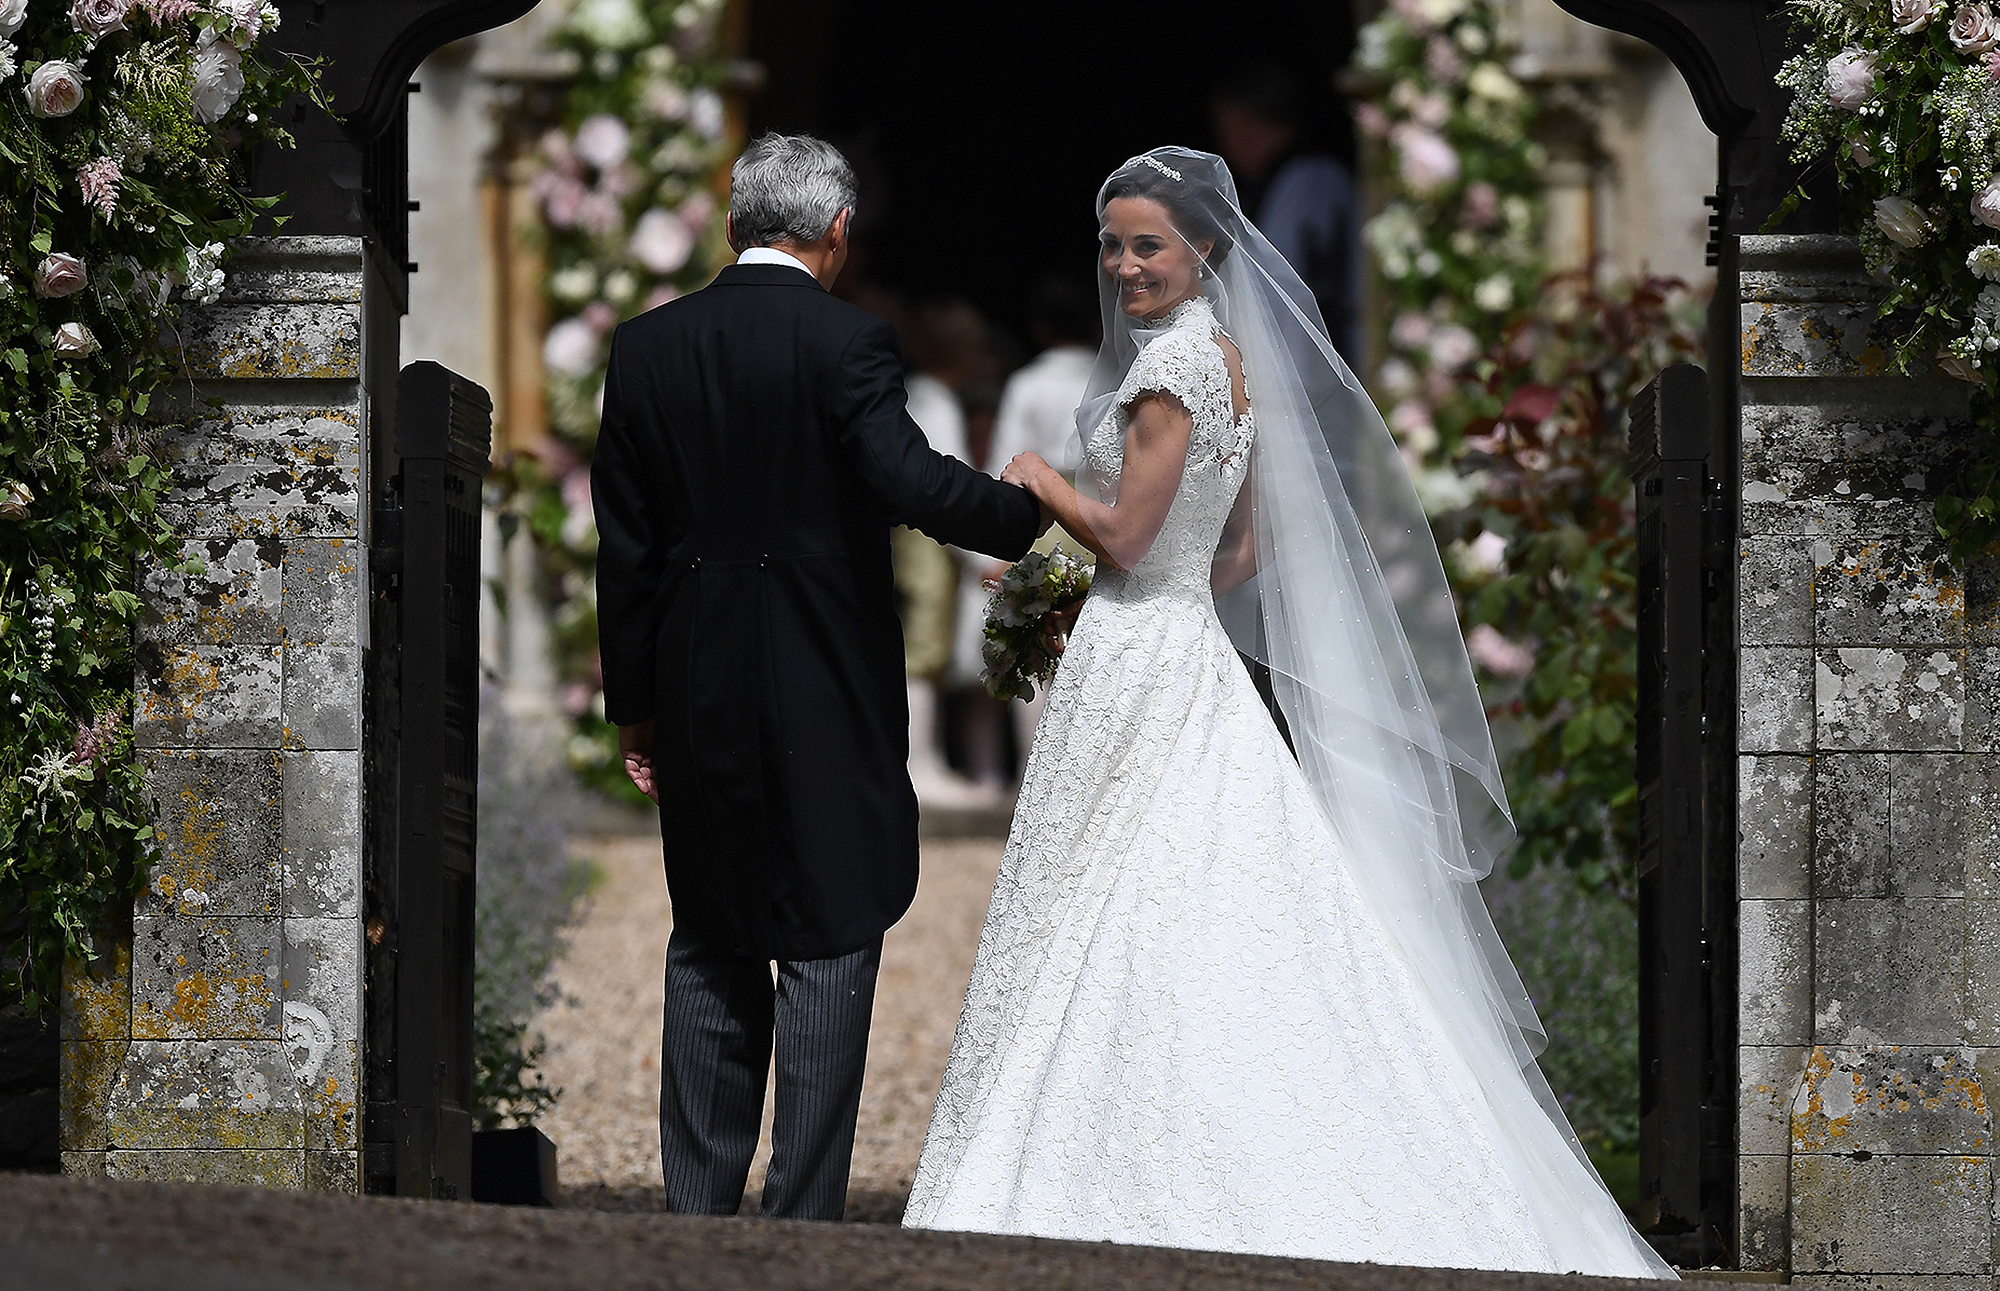 BRITAIN-ROYALS-PEOPLE-MIDDLETON-MARRIAGE